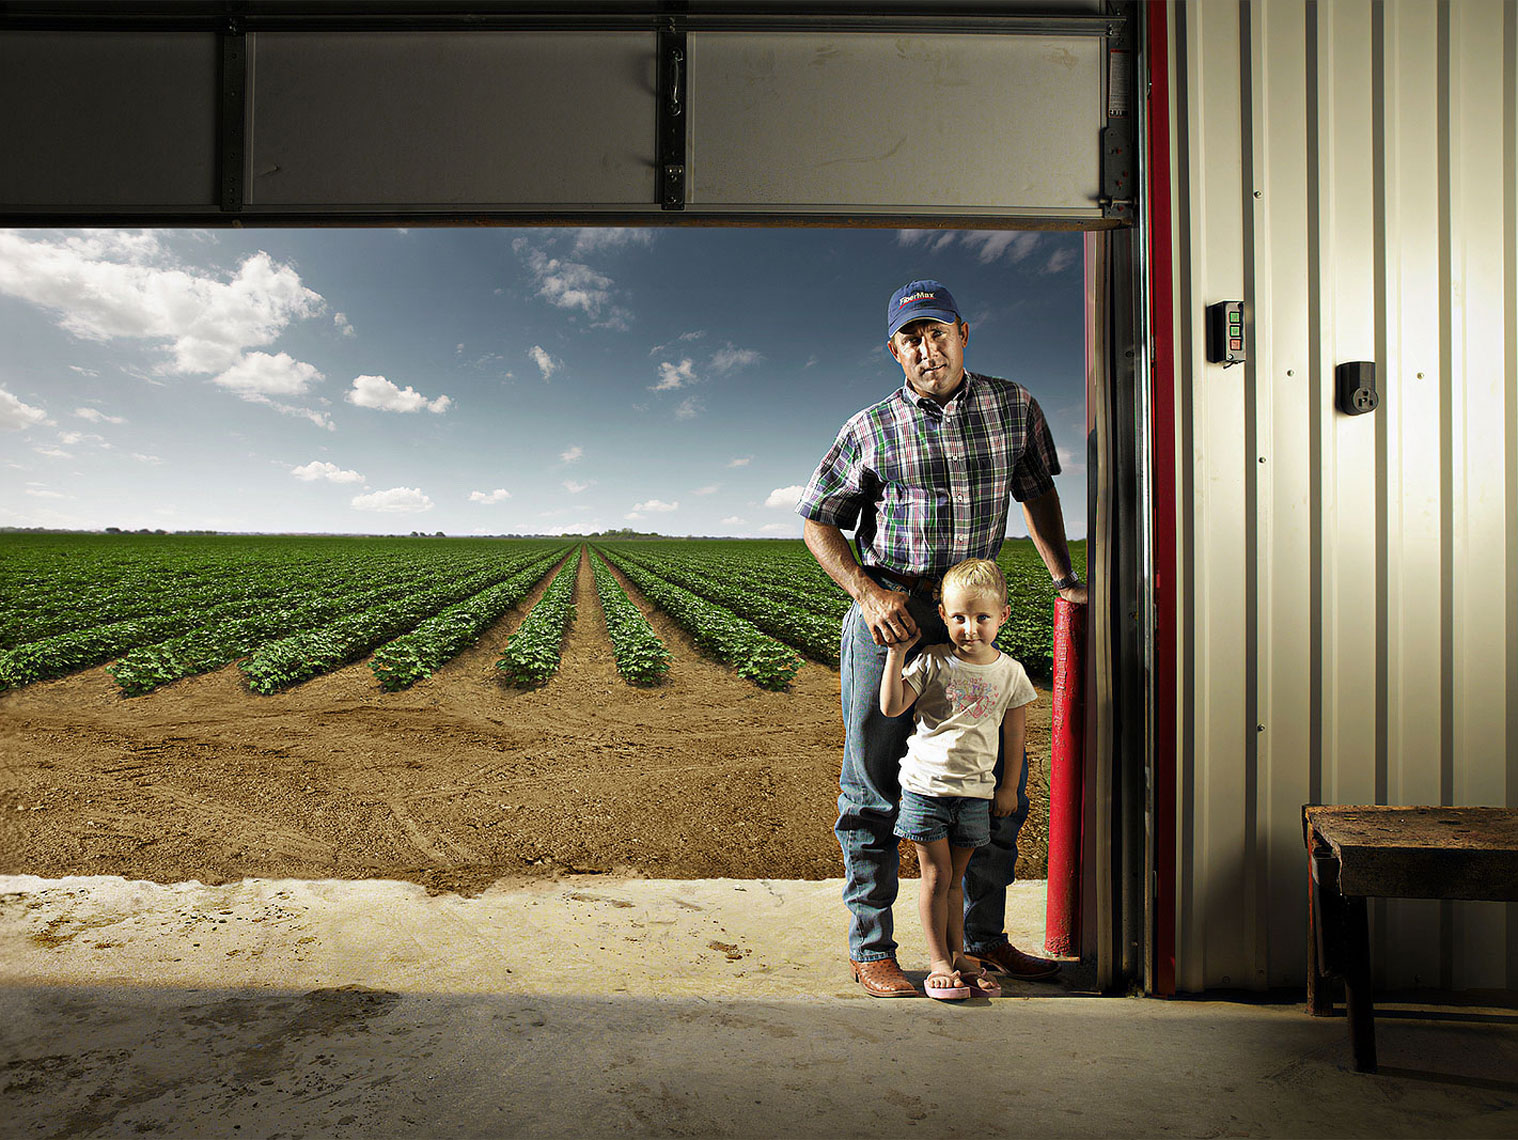 Bayer Crop Science_011| Robert Randall Advertising Photographer, Commercial Photographer, CGI, Portrait, and Lifestyle Photography